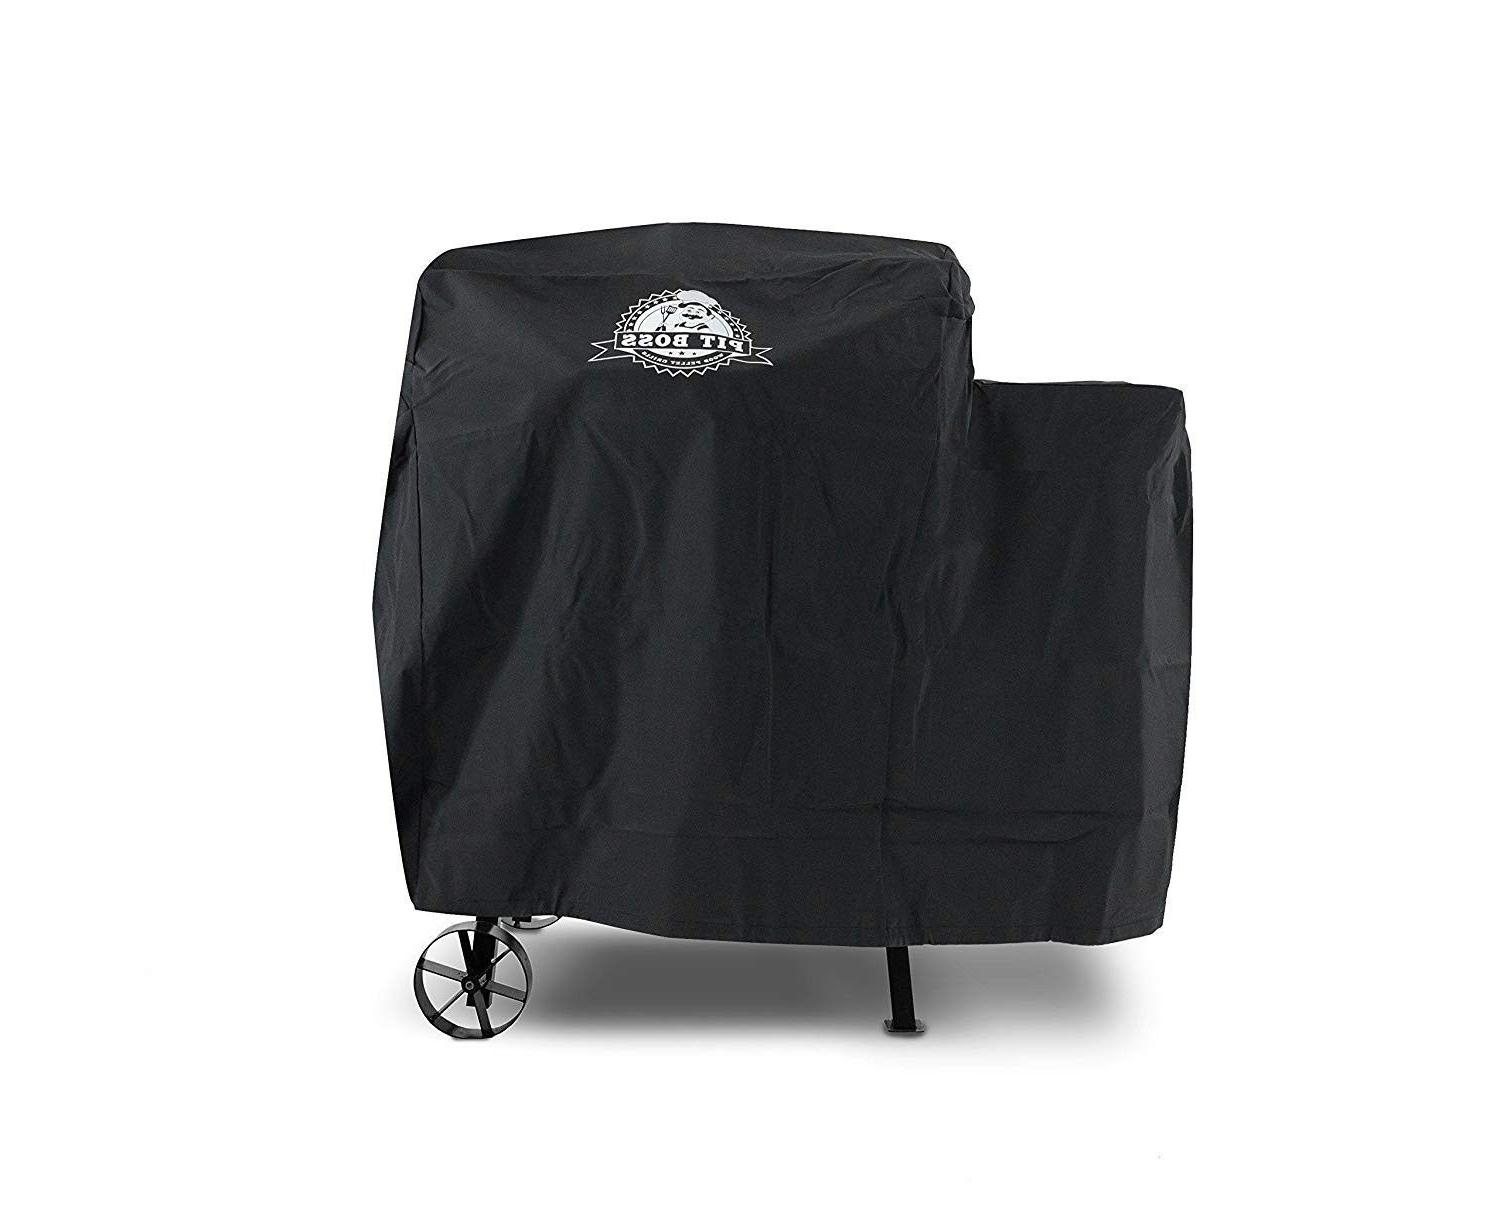 new 340 wood pellet grill cover